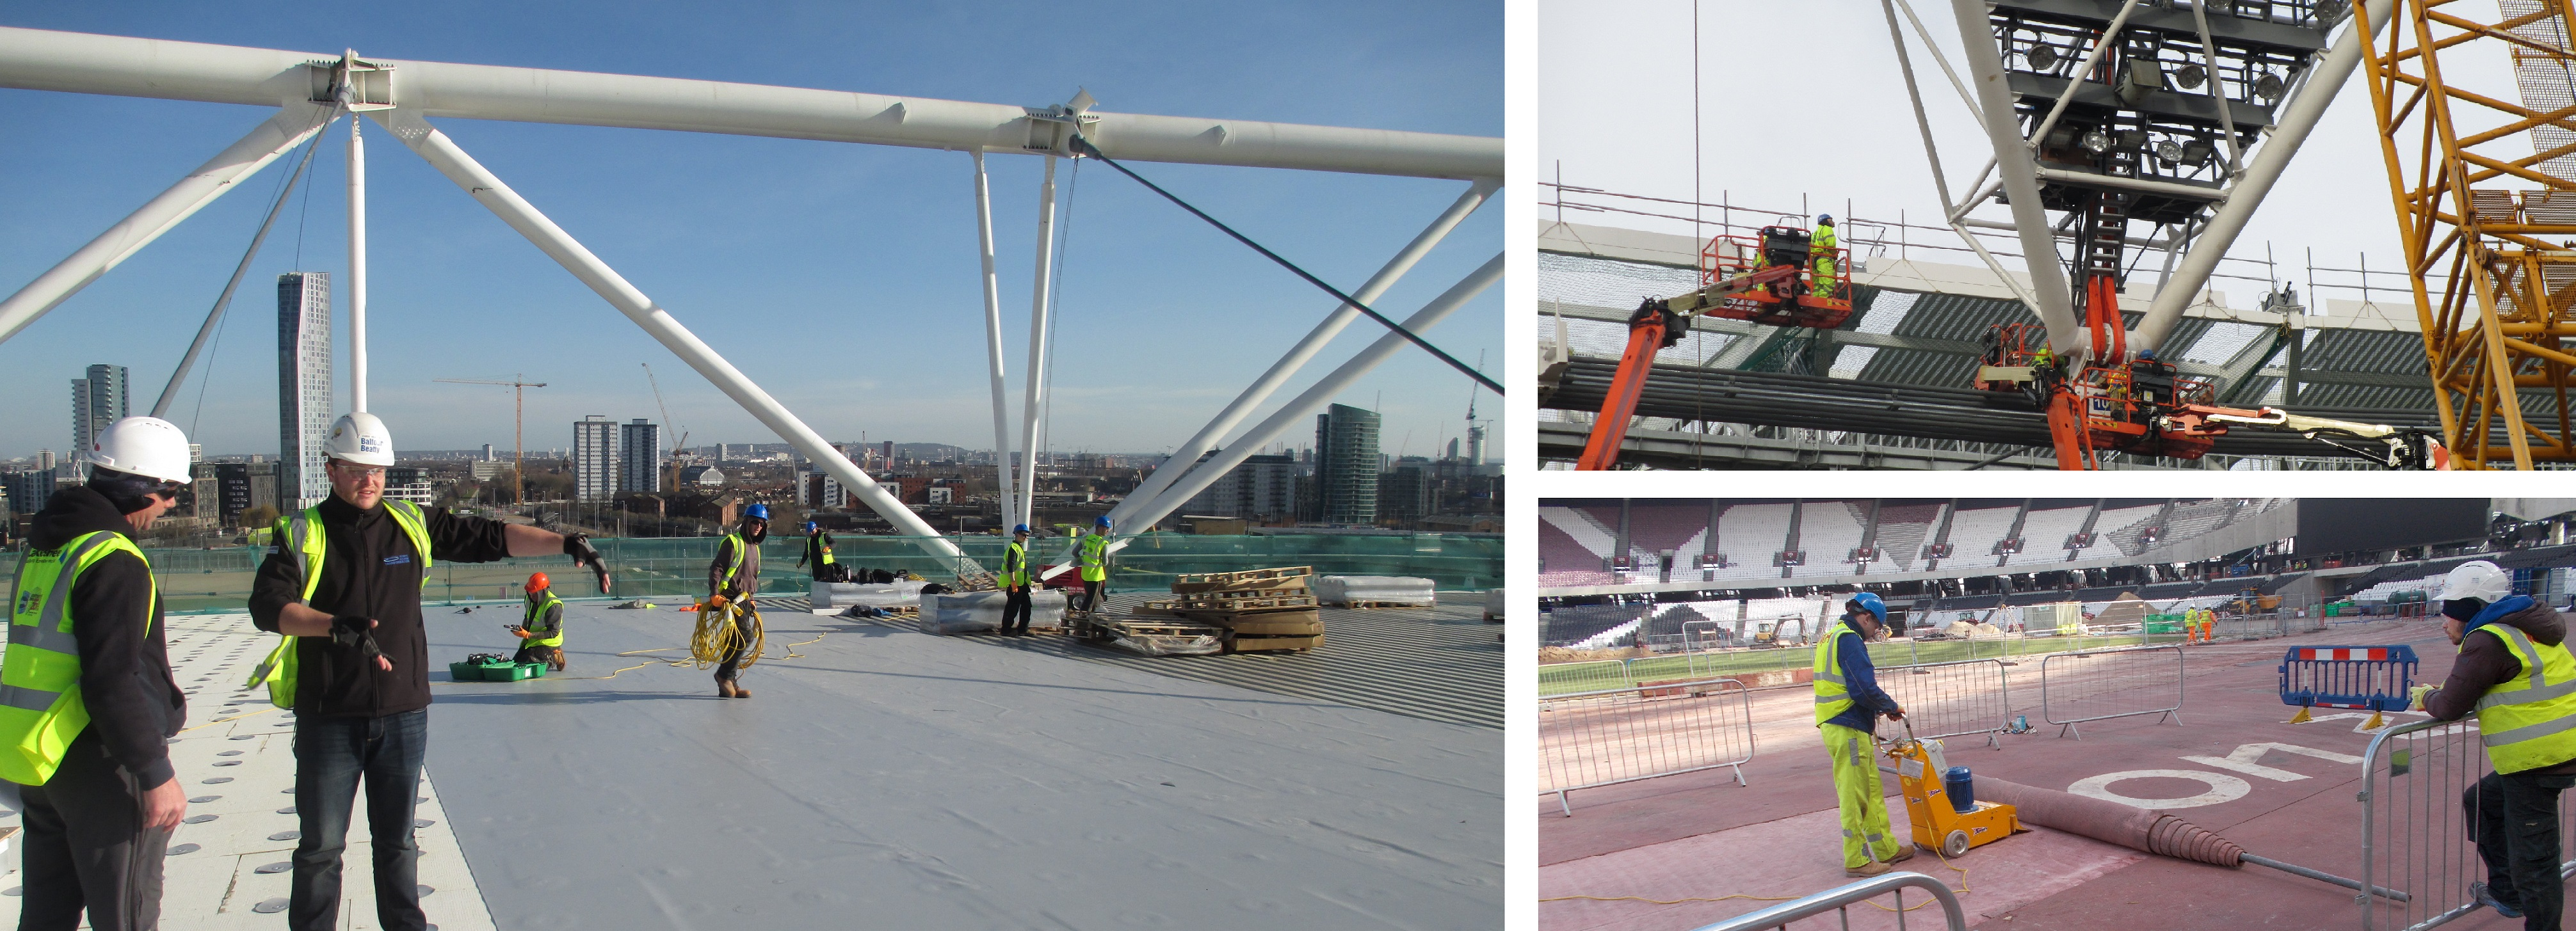 Considerately transforming the Olympic Stadium – Balfour Beatty Best ...